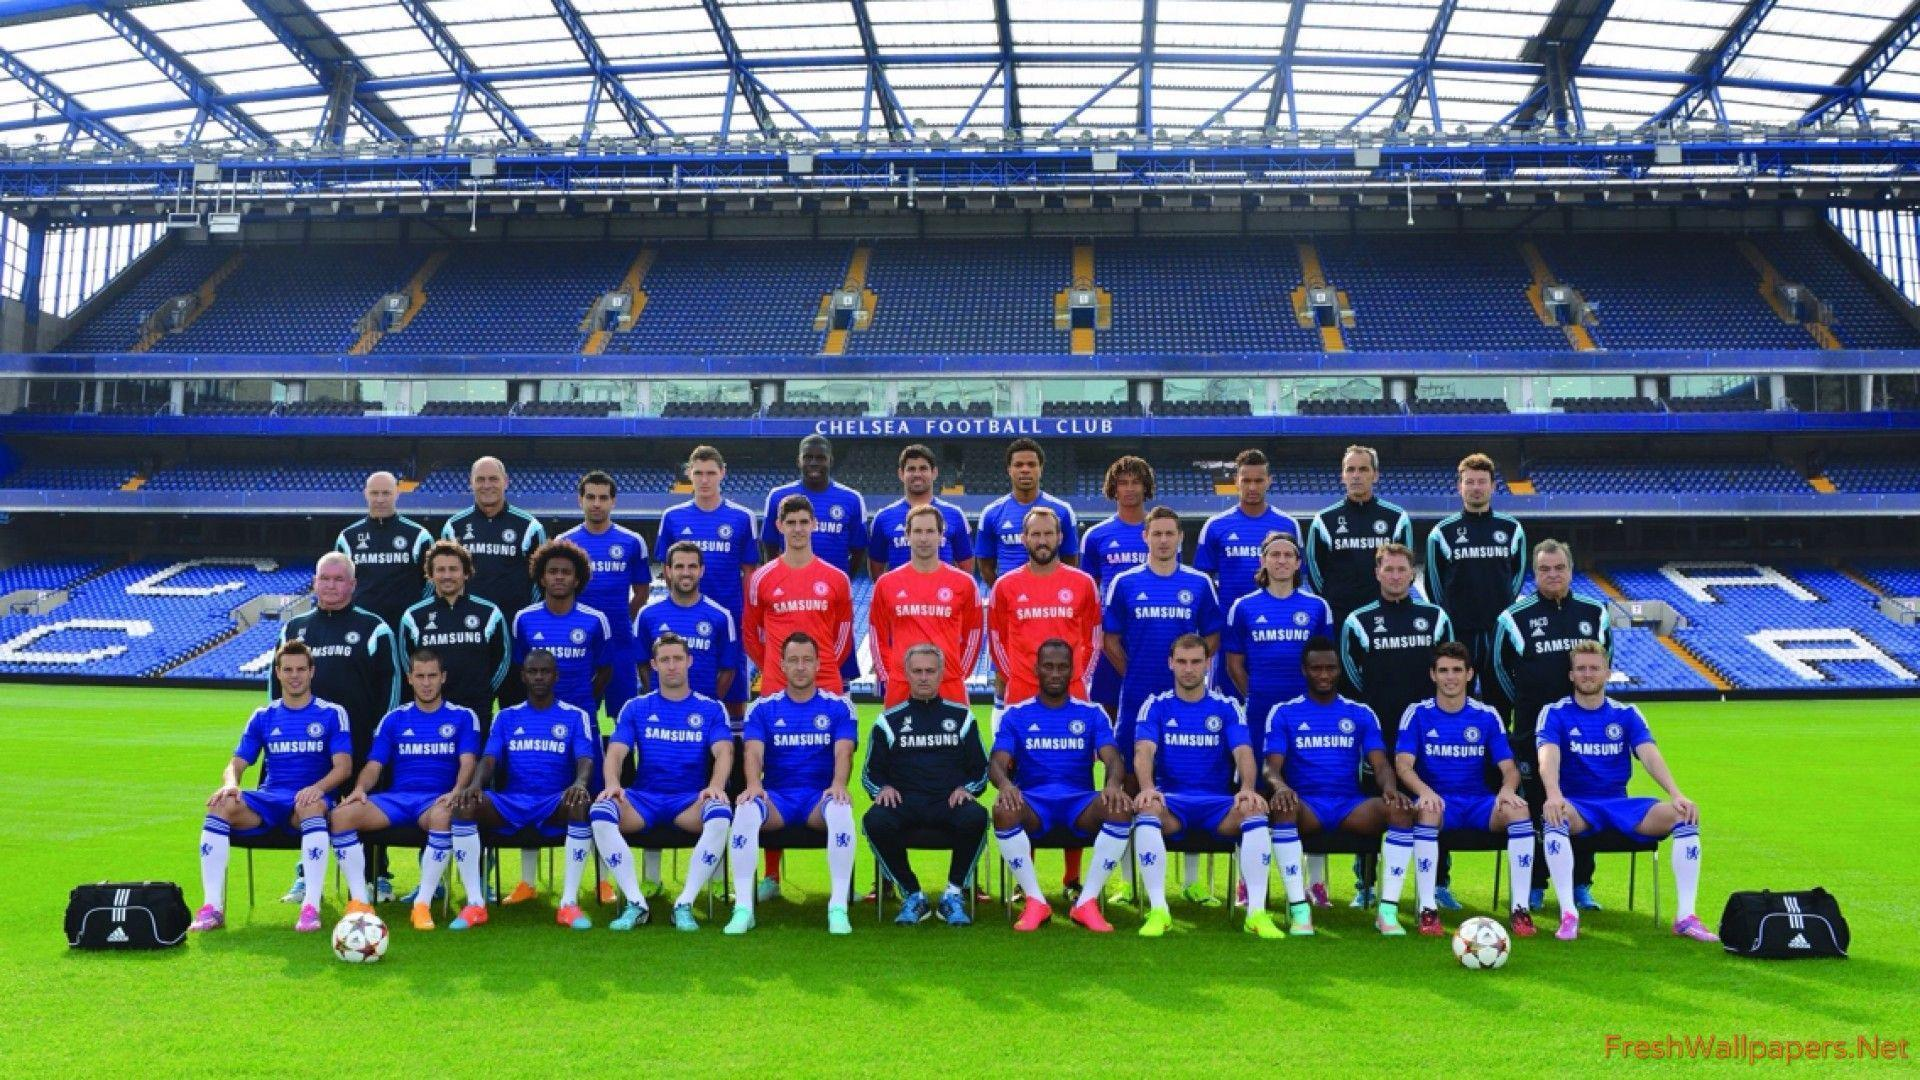 Thailand All-Stars vs Chelsea wallpapers | Freshwallpapers